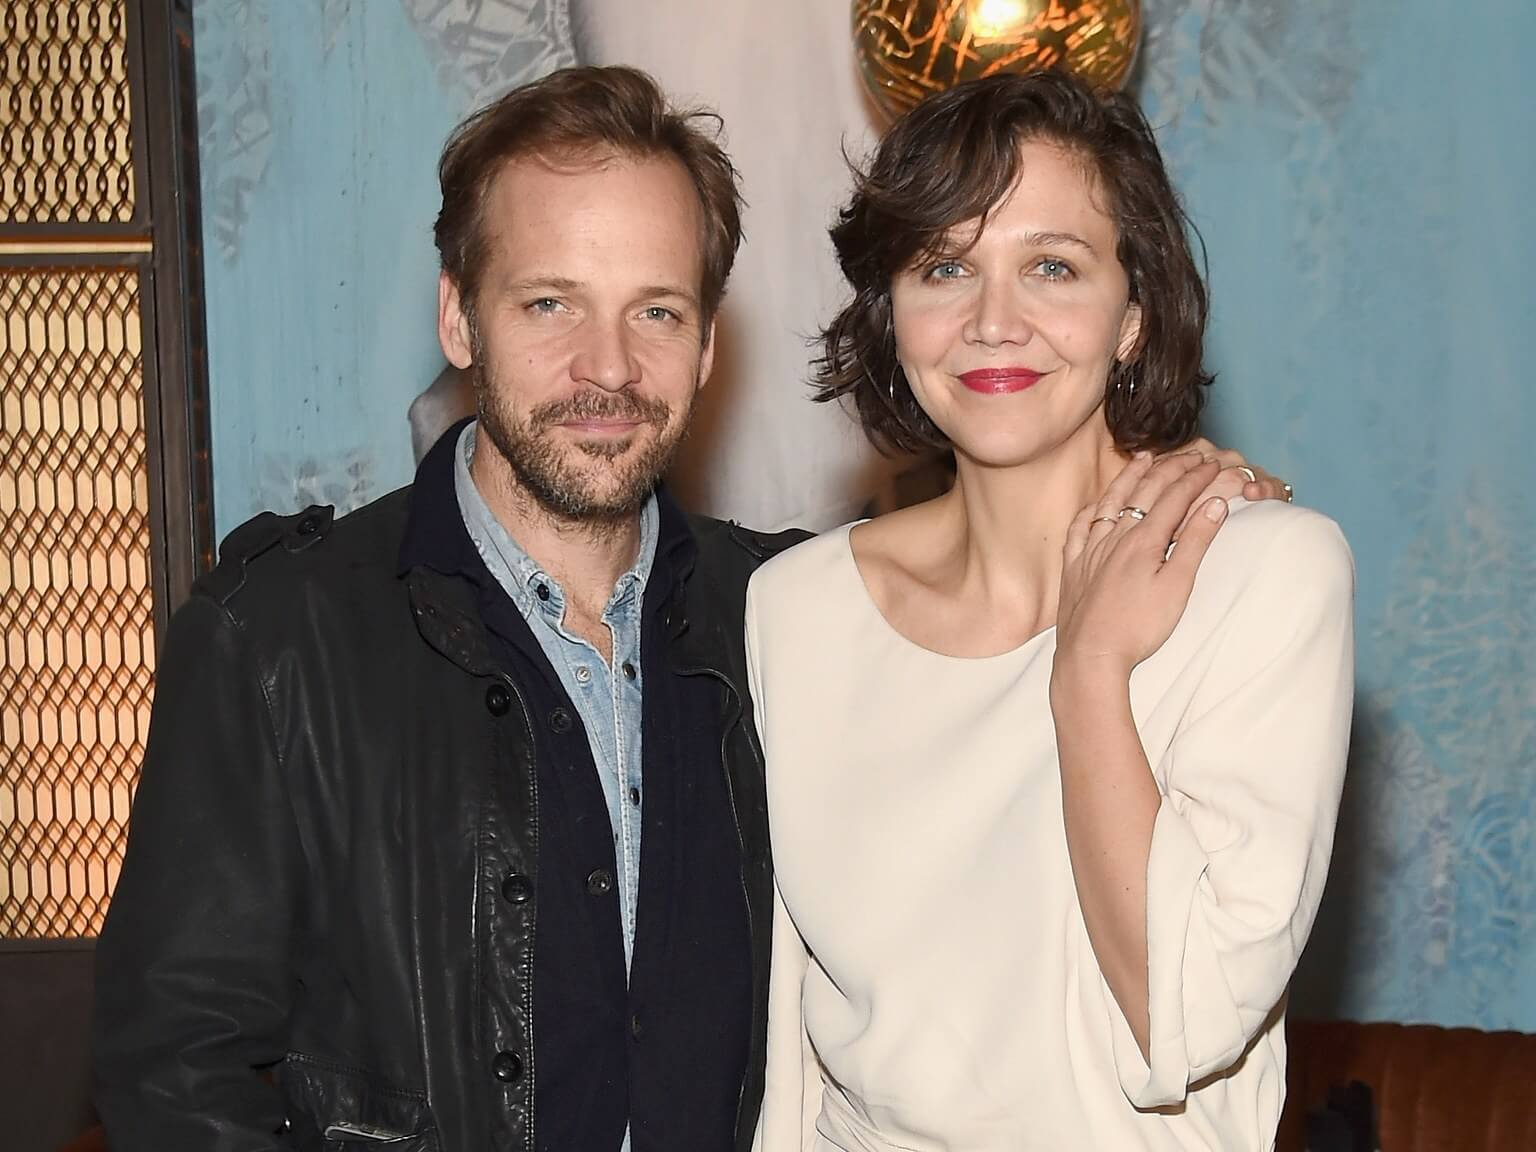 Sarsgaard with his wife, actress Maggie Gyllenhaal